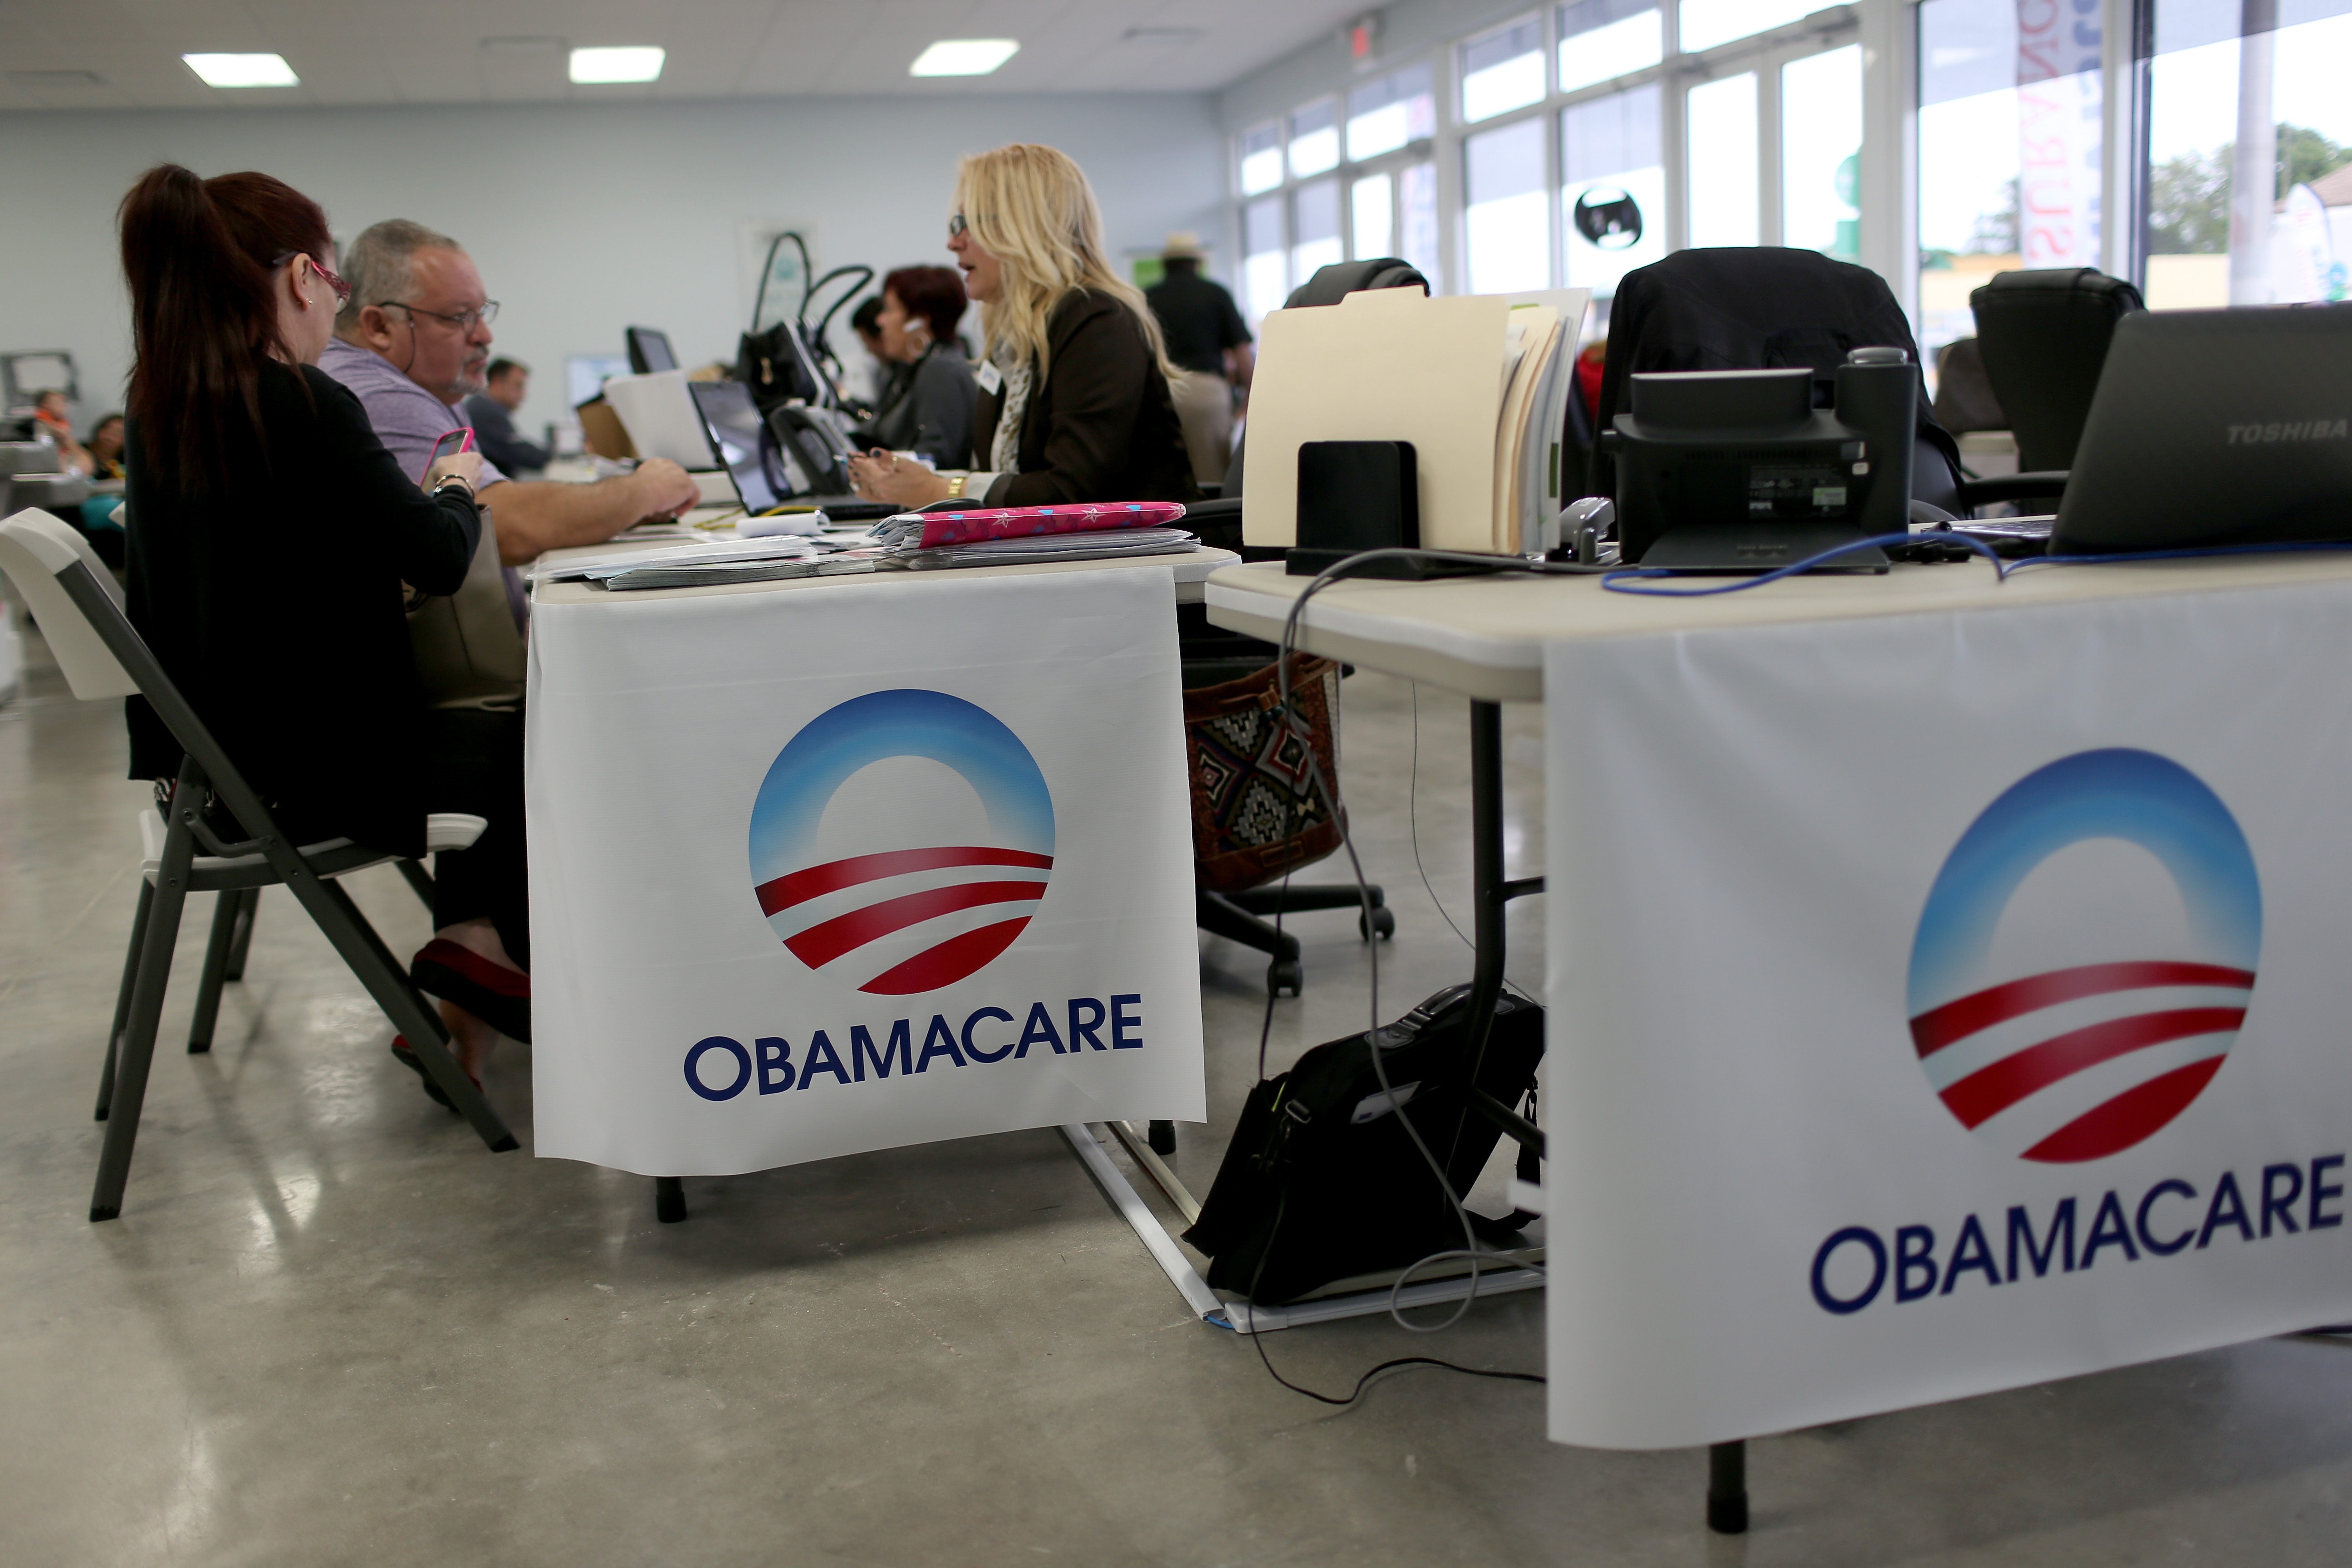 Aymara Marchante (L) and Wiktor Garcia sit with Maria Elena Santa Coloma, as they sign up for the Affordable Care Act, also known as Obamacare, before the February 15th deadline on February 5, 2015 in Miami, Florida.